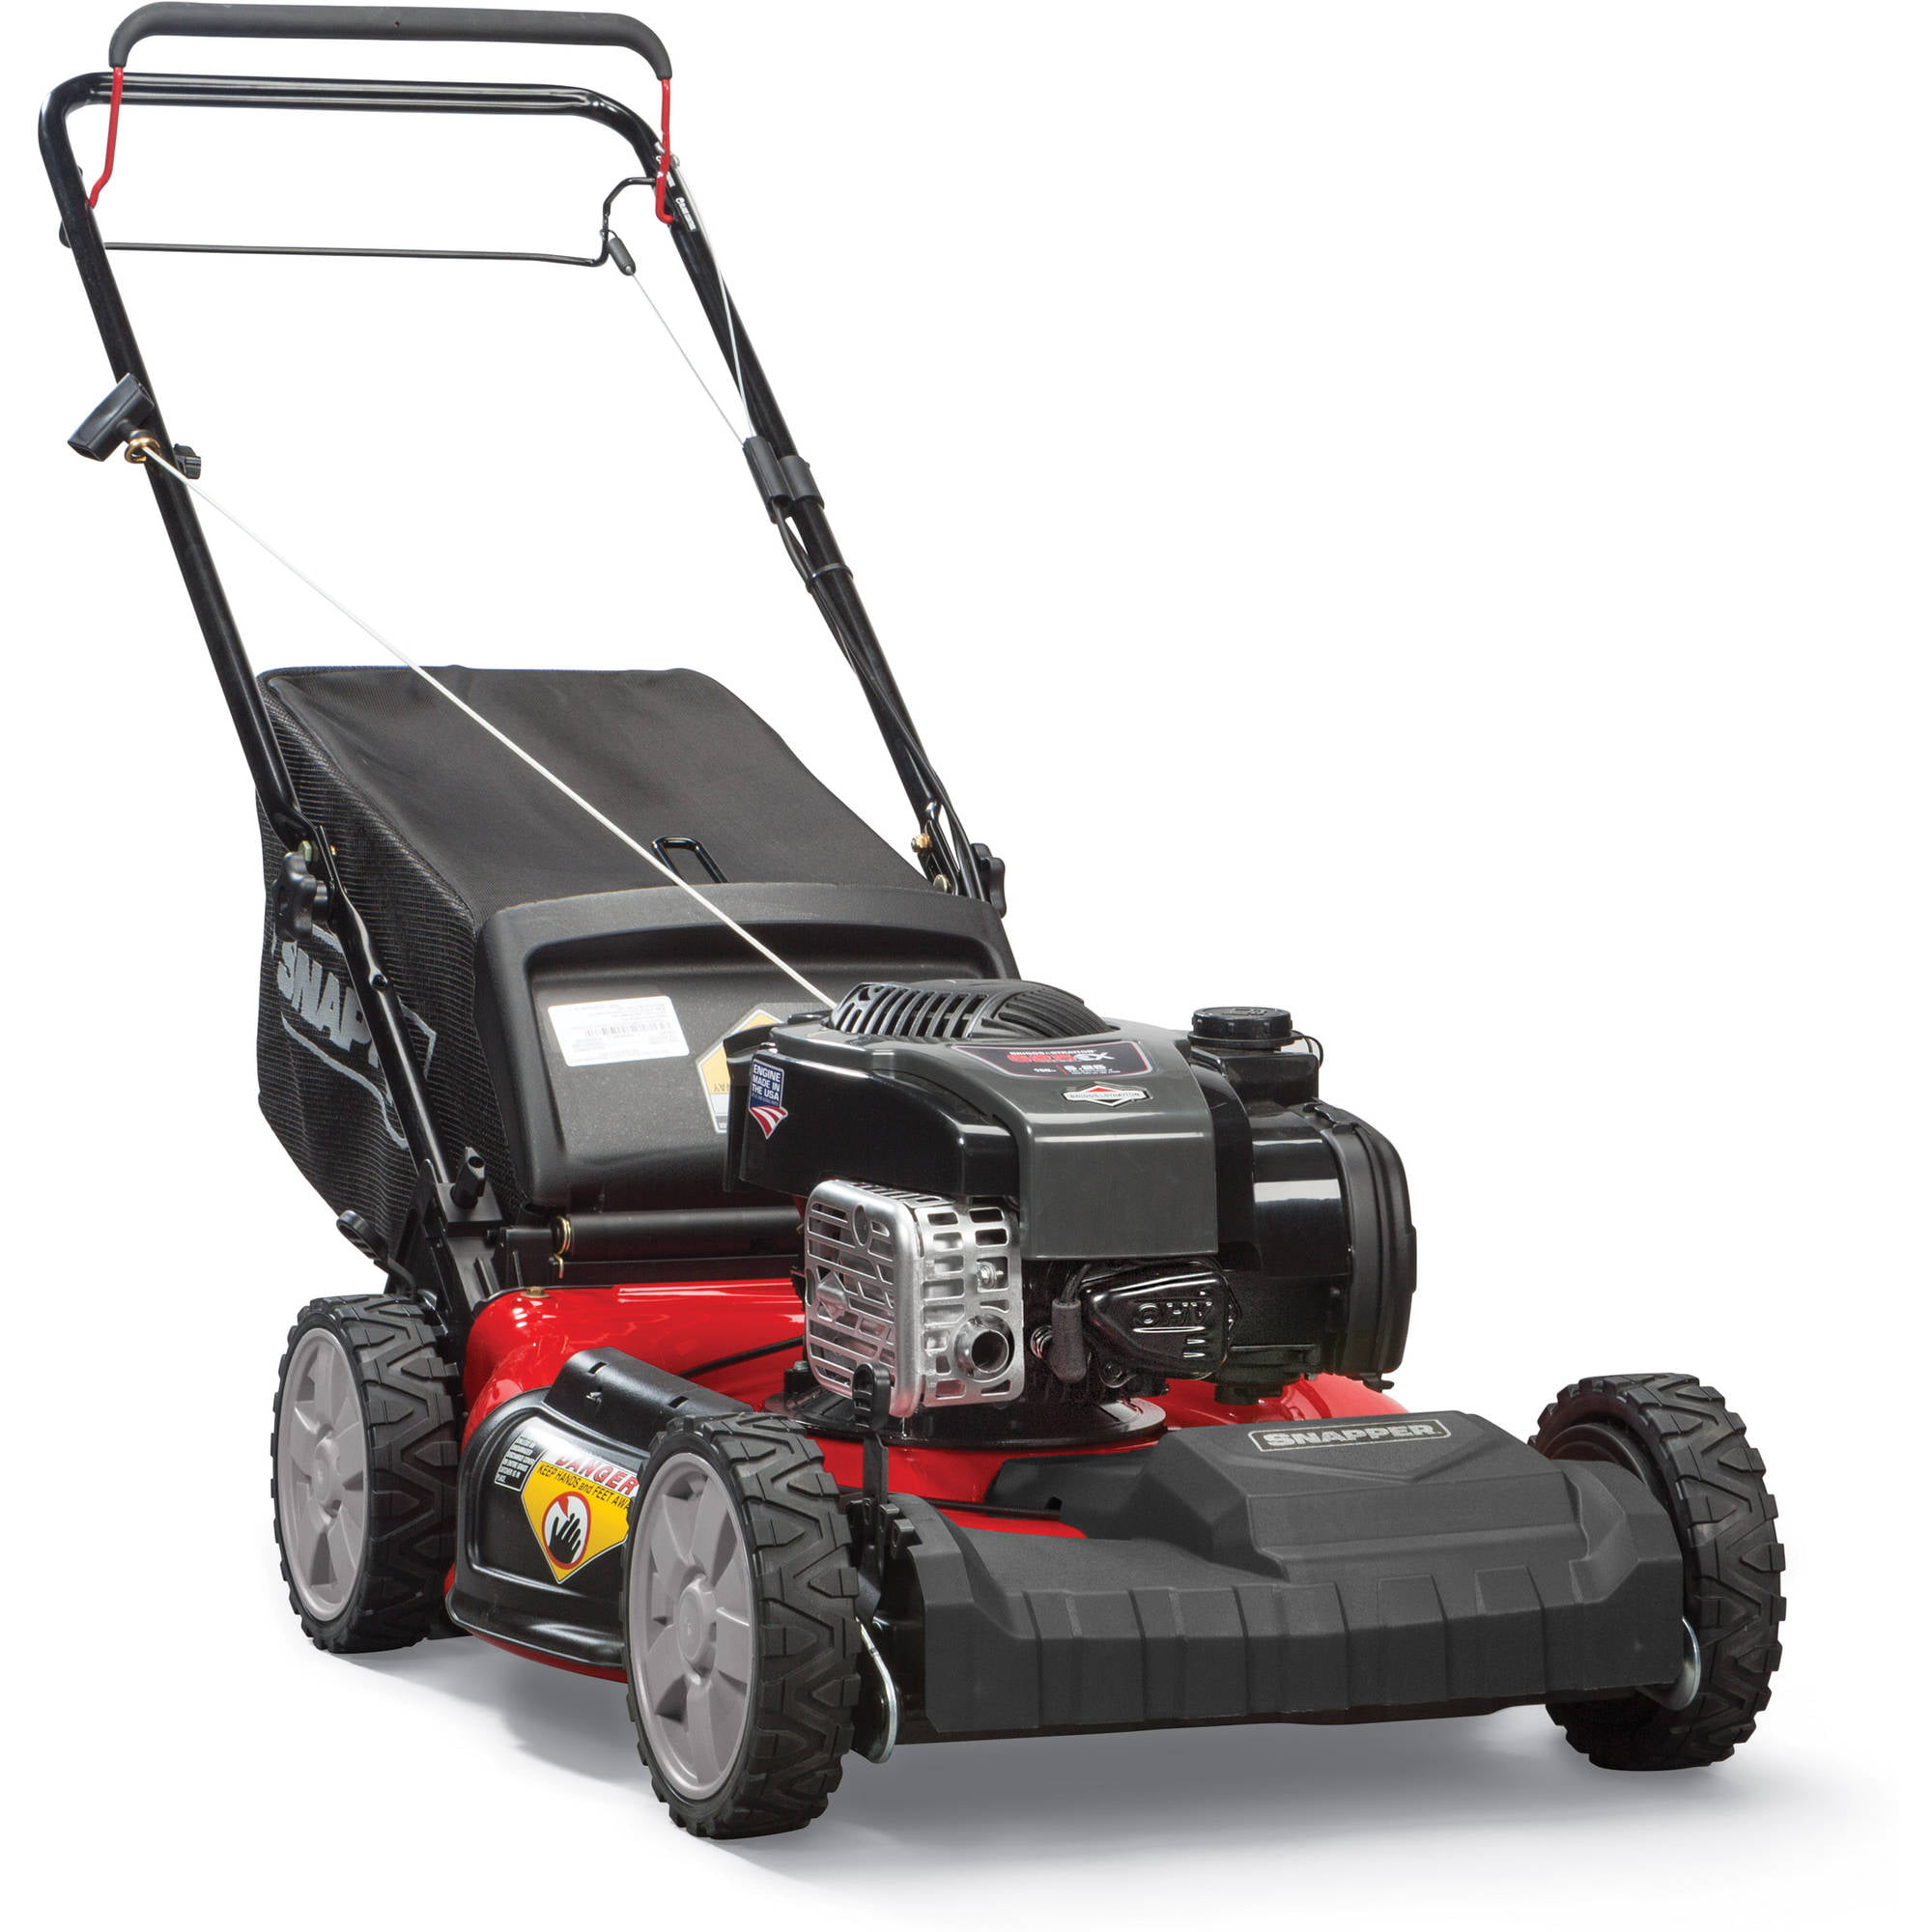 """Snapper 21"""" Self Propelled Gas Mower with Side Discharge, Mulching, Rear  Bag - Walmart.com"""